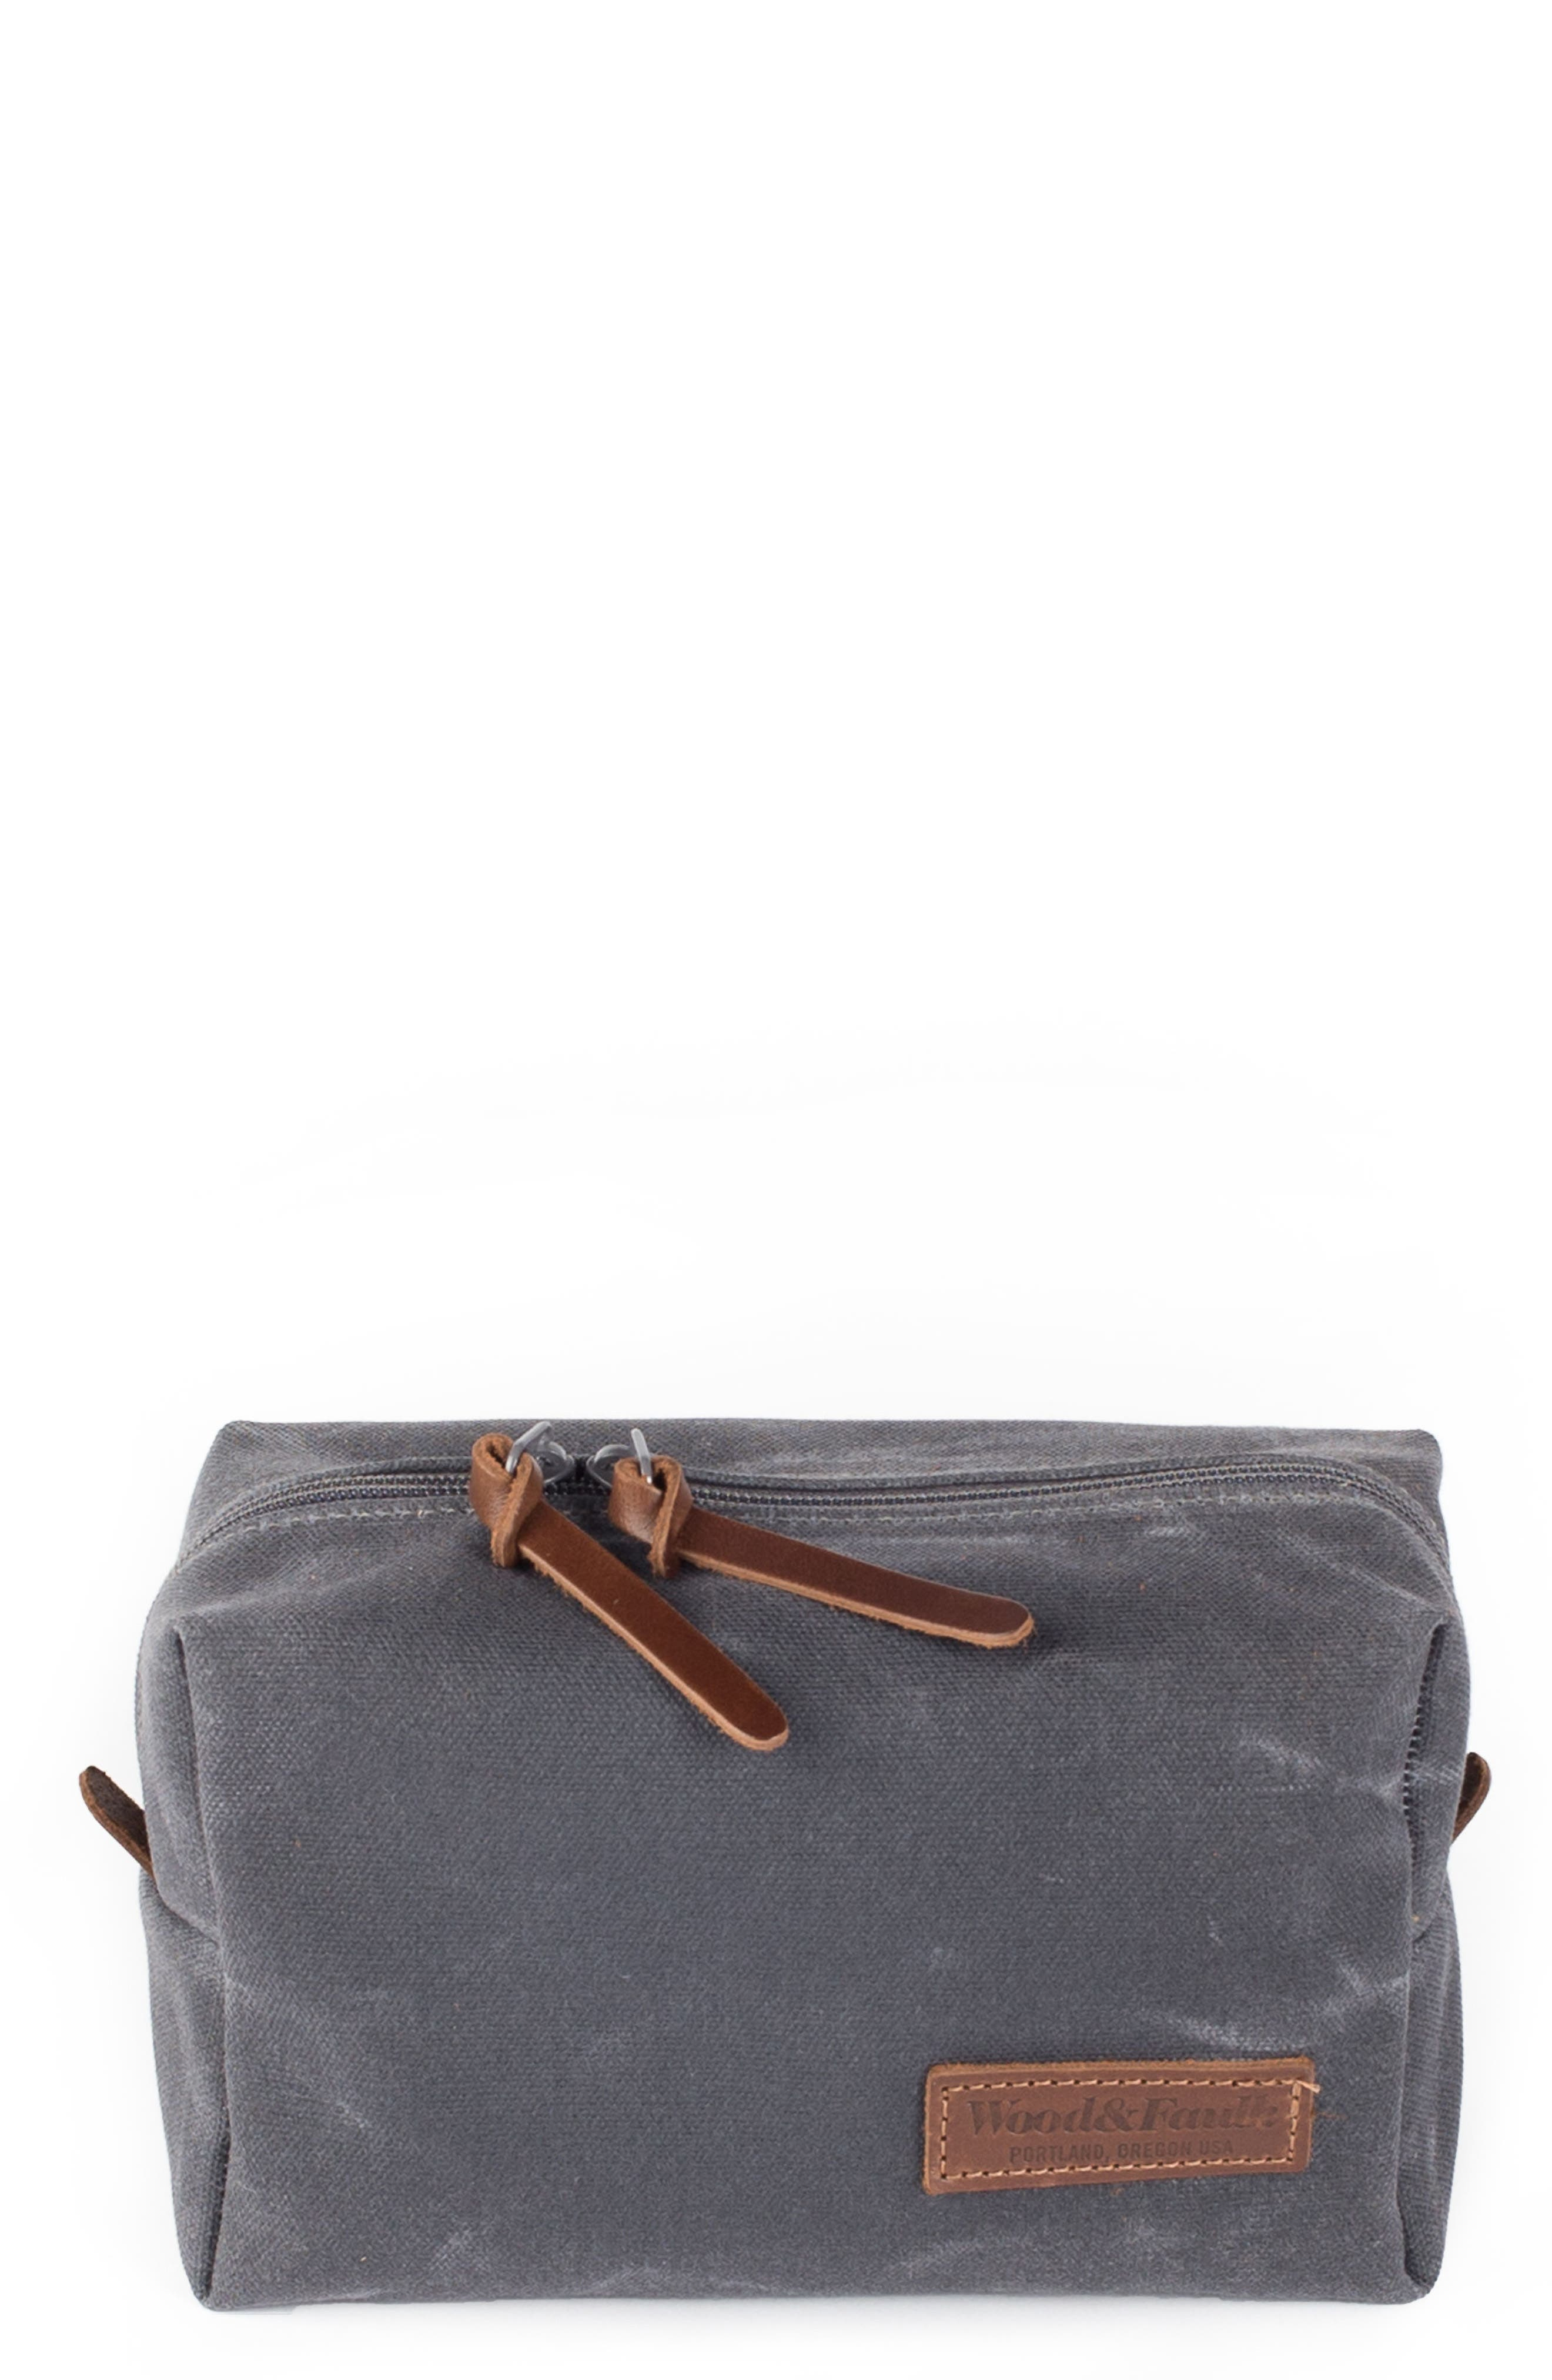 Traverse Waxed Canvas Dopp Kit,                             Main thumbnail 1, color,                             021